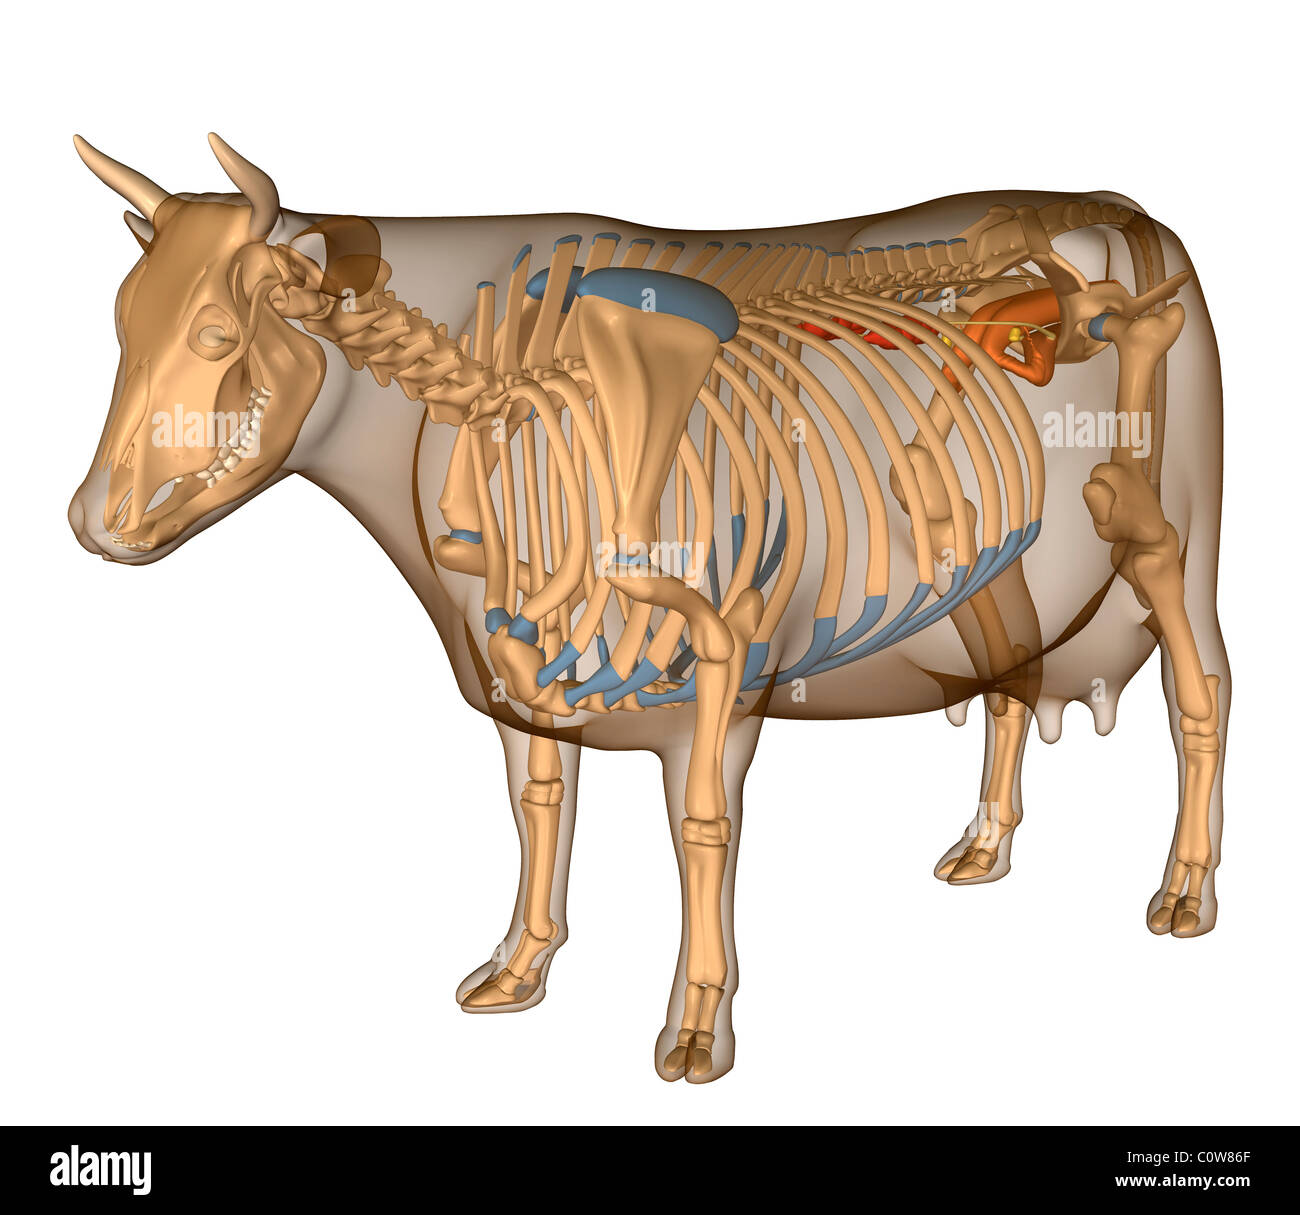 Anatomy of the cow reproduction - Stock Image